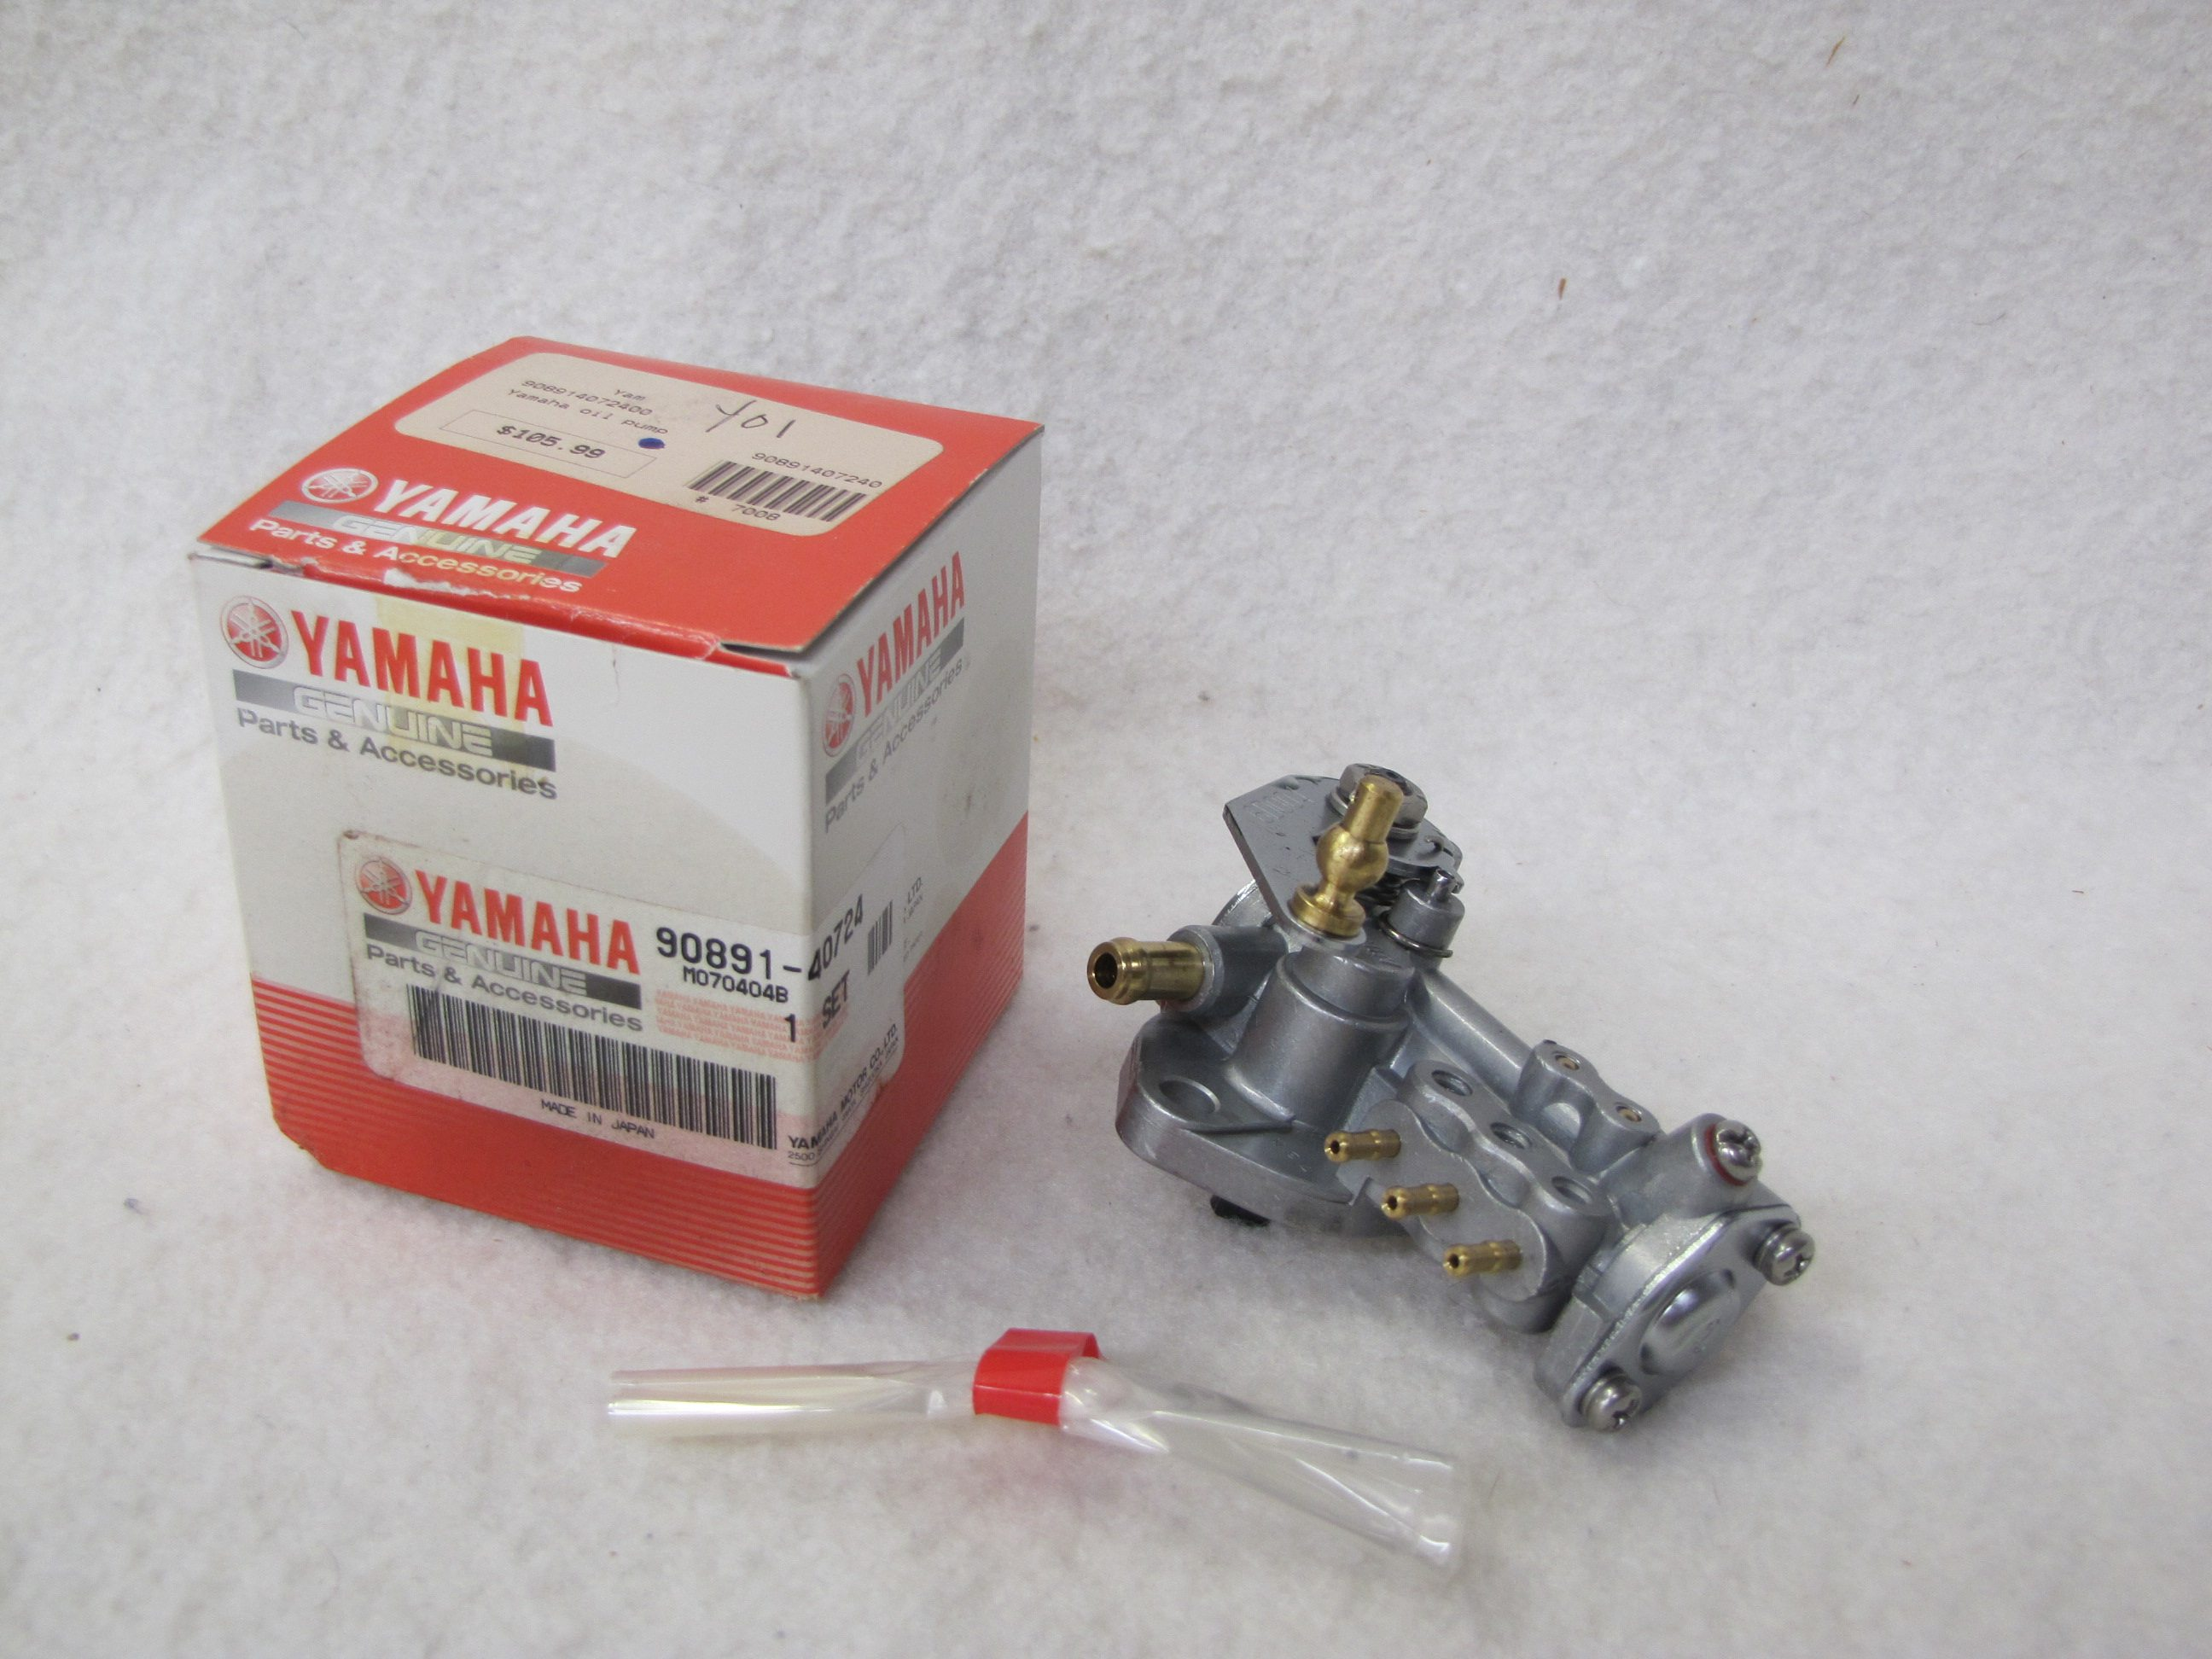 Yamaha Outboard Engine Parts Express Marine Fuel Filter Genuine Oil Injection Pump 90891 40724 00